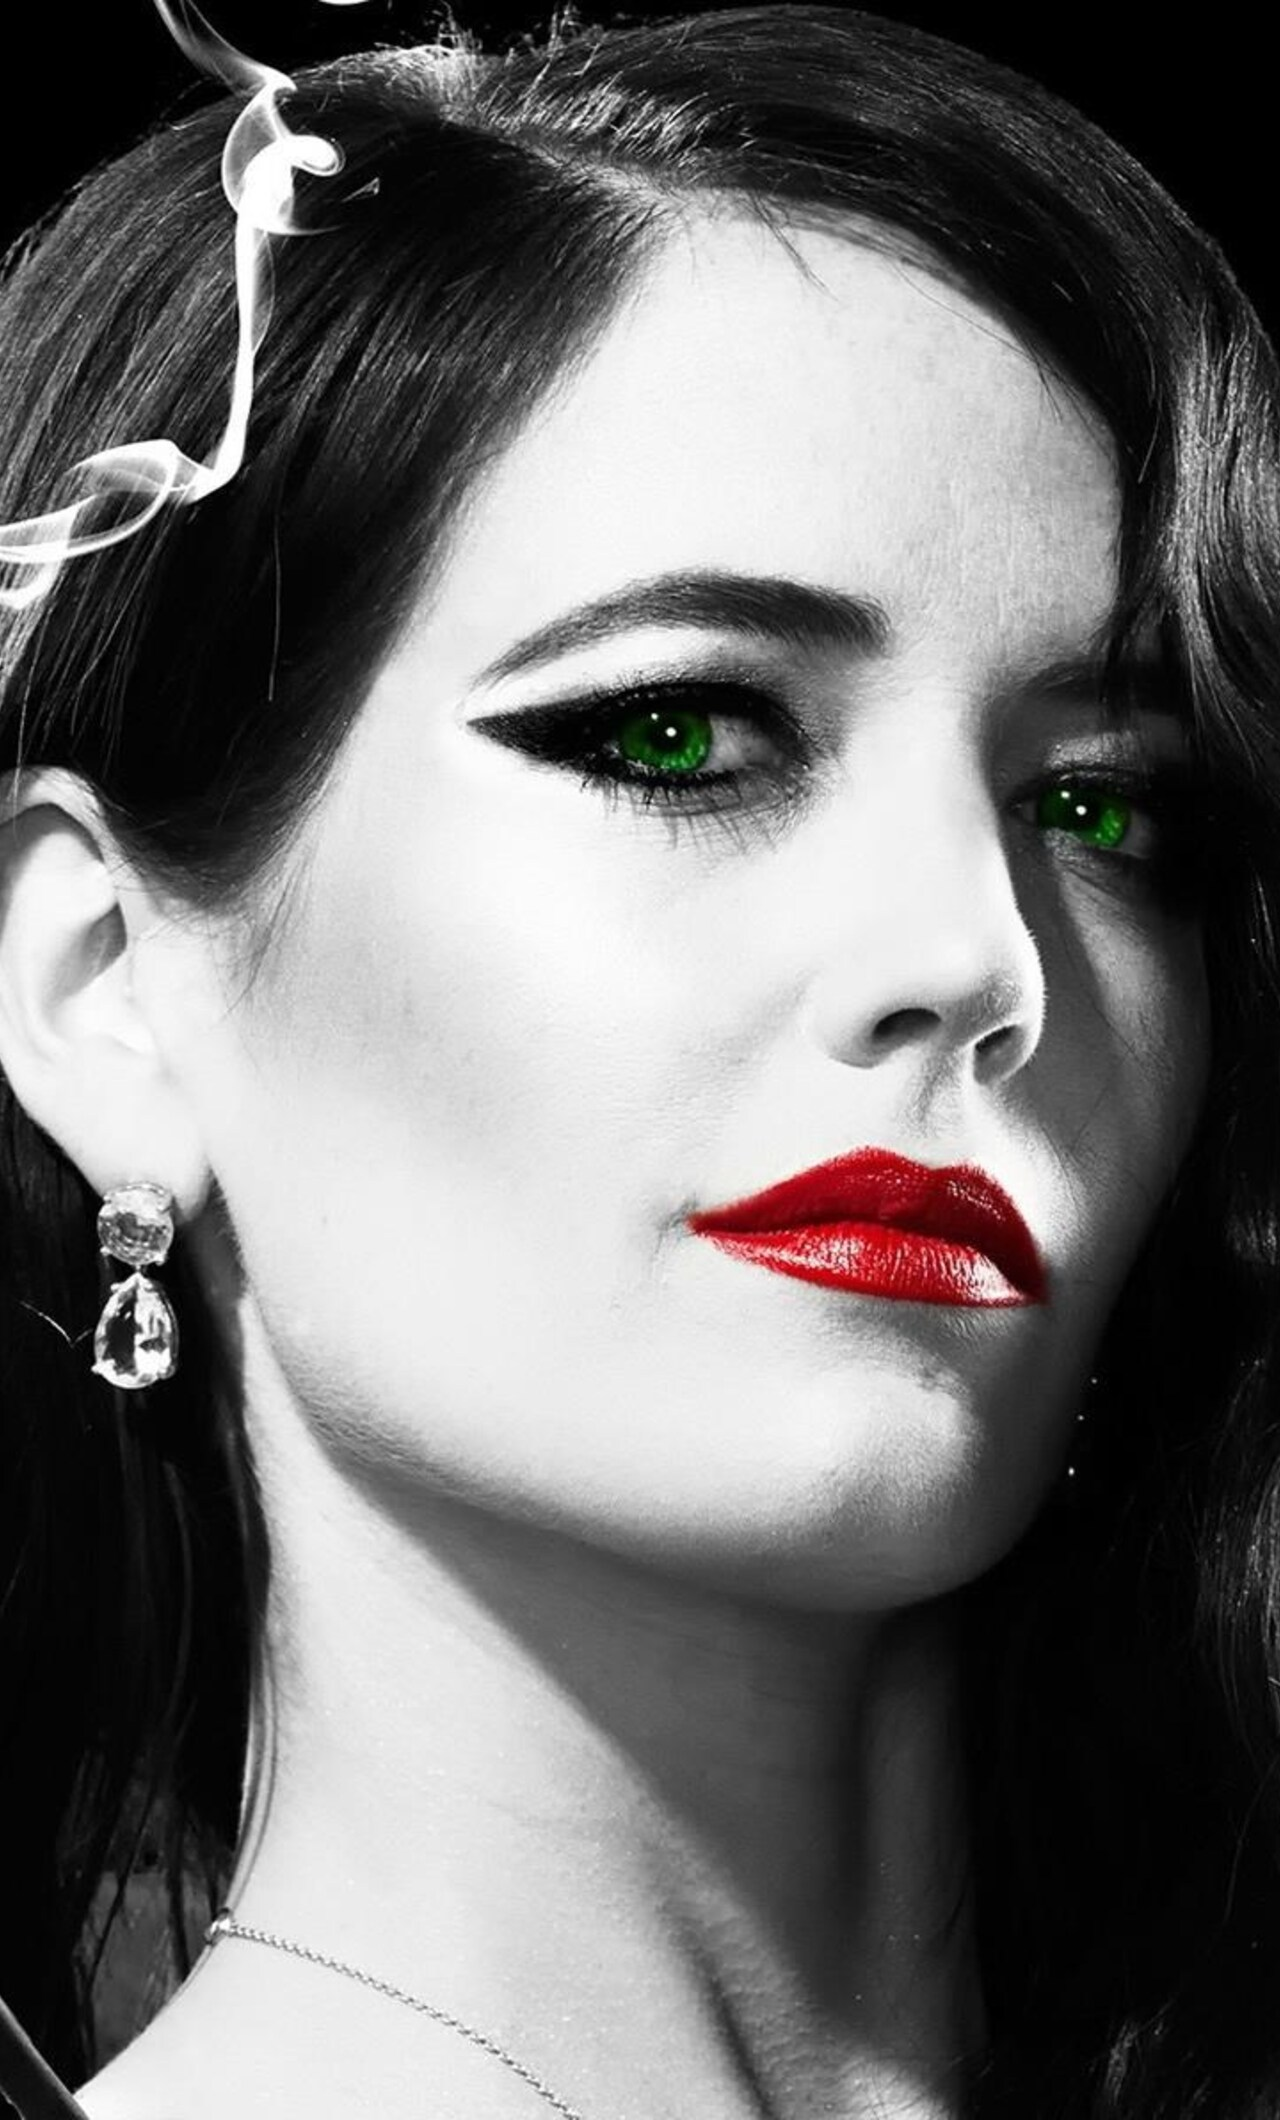 1280x2120 eva green in sin city movie iphone 6+ hd 4k wallpapers